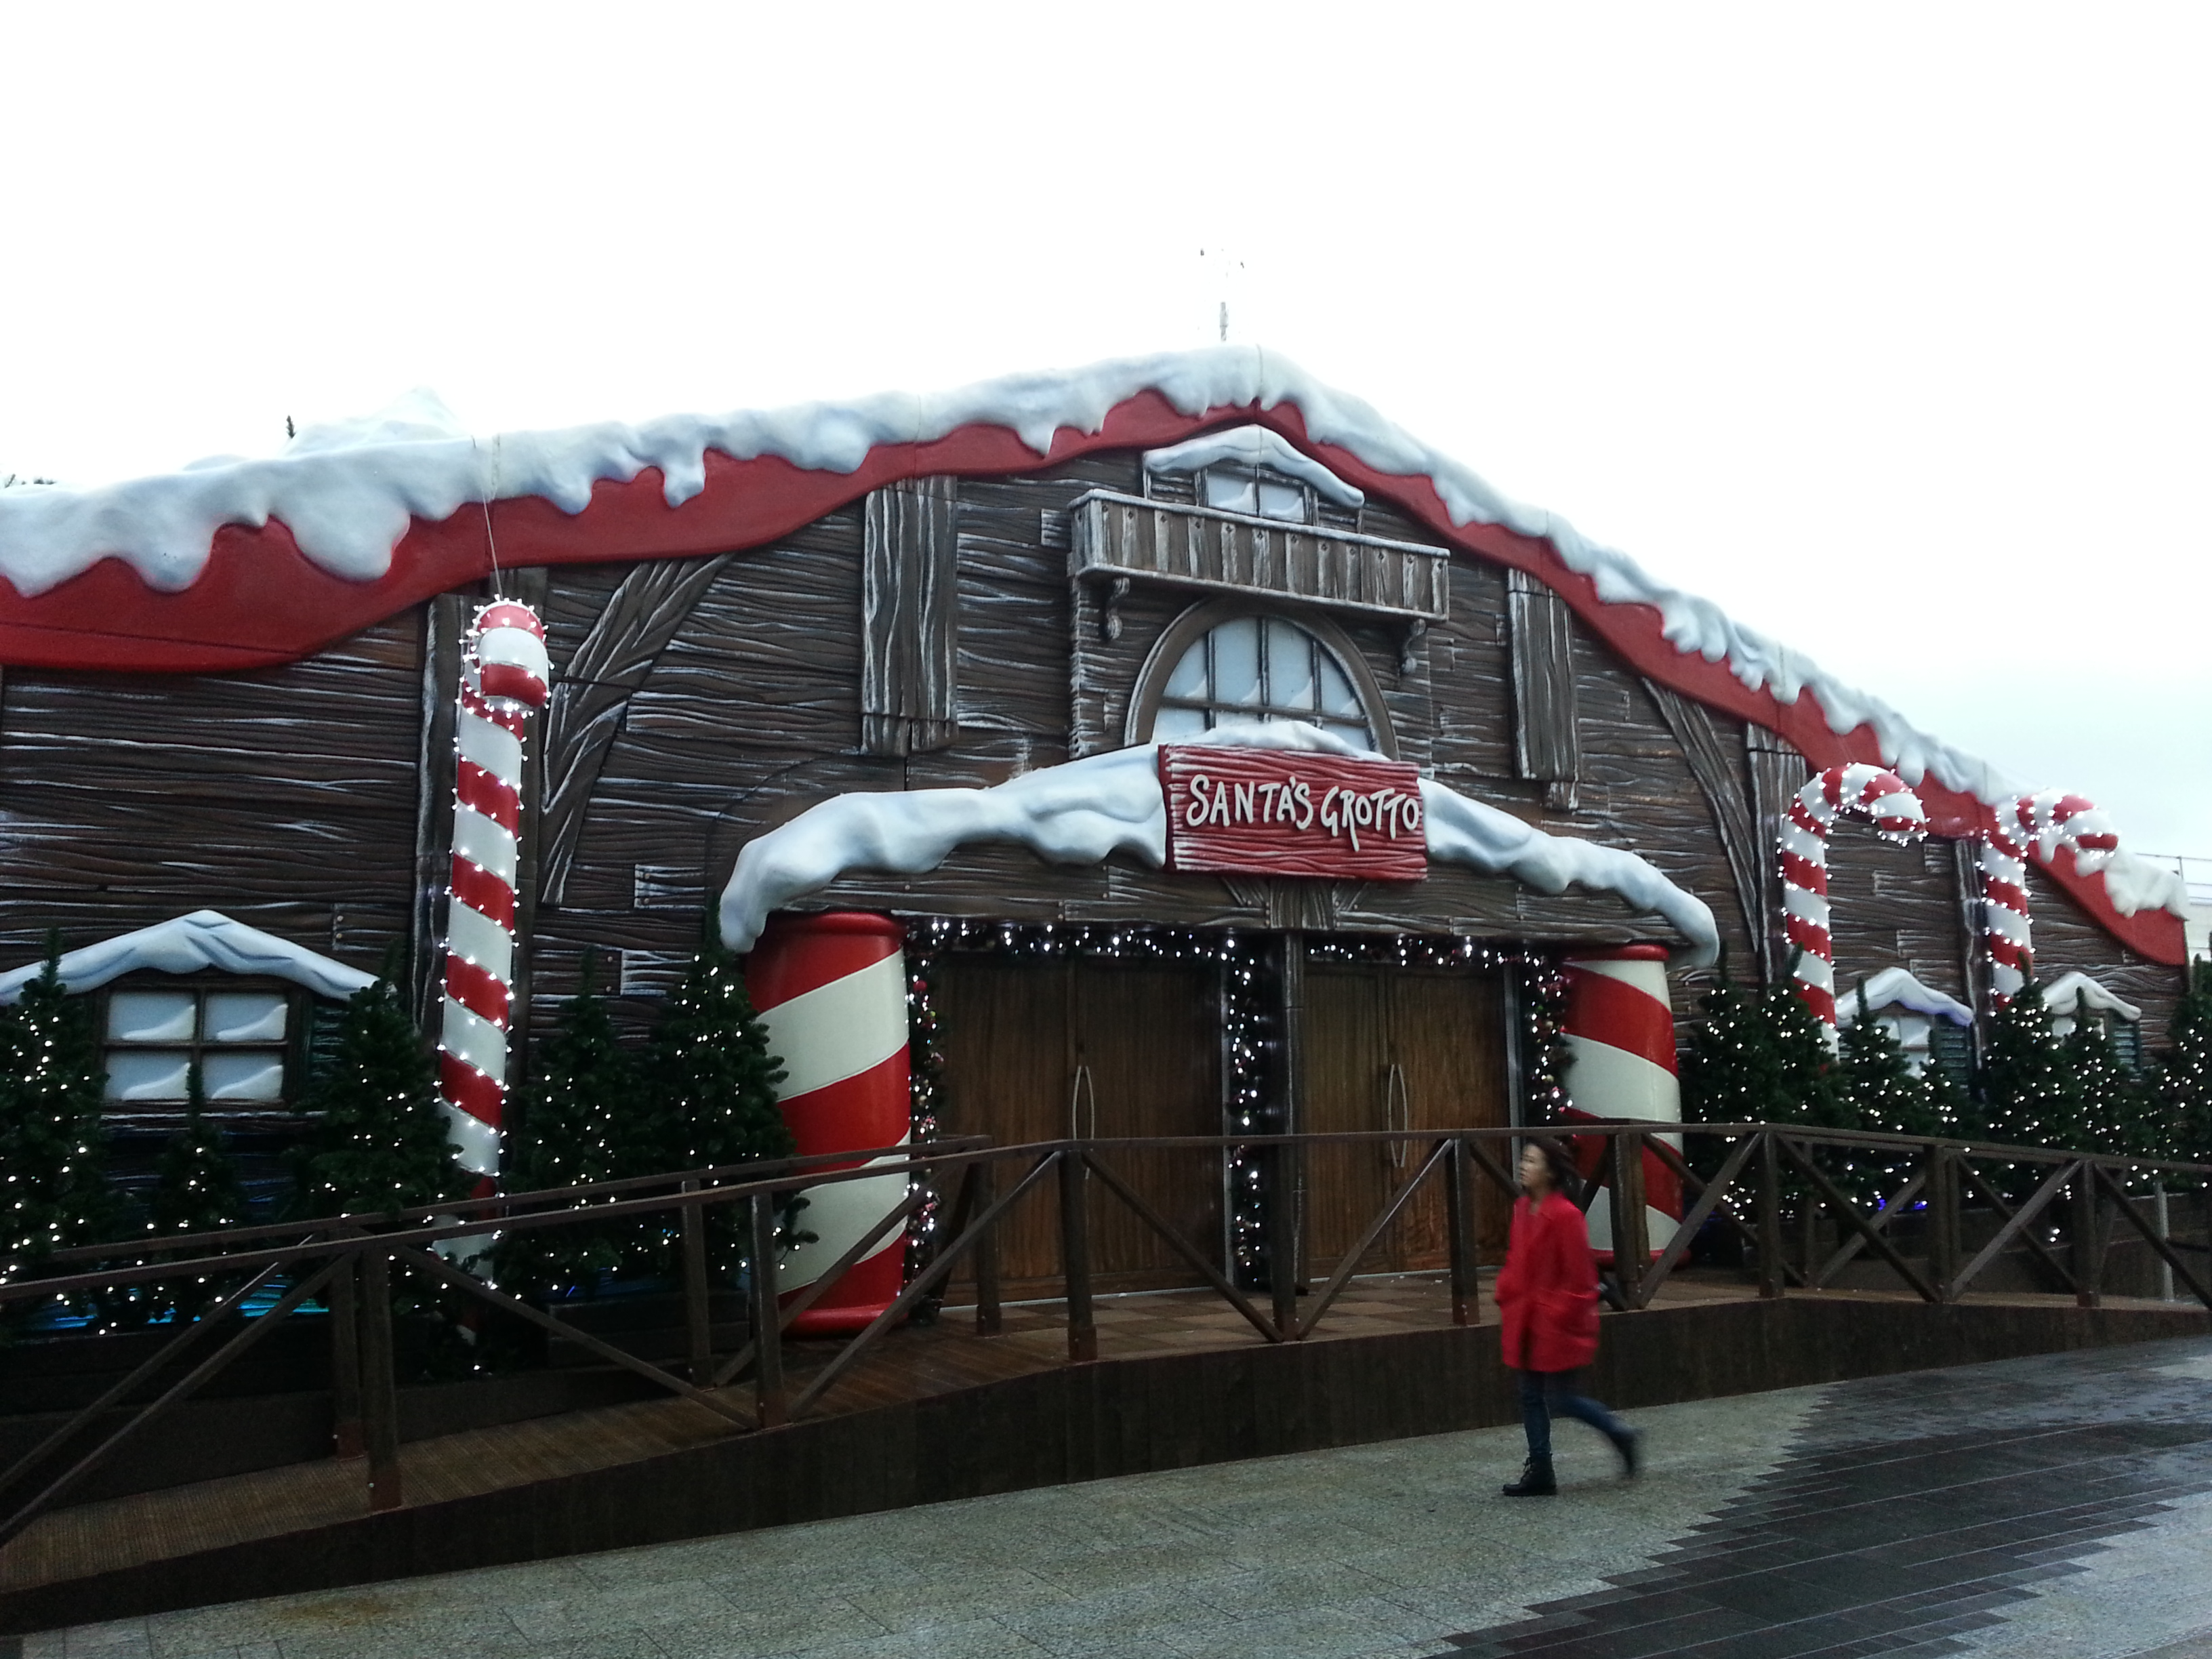 Westfield Christmas Grotto (2013-14)